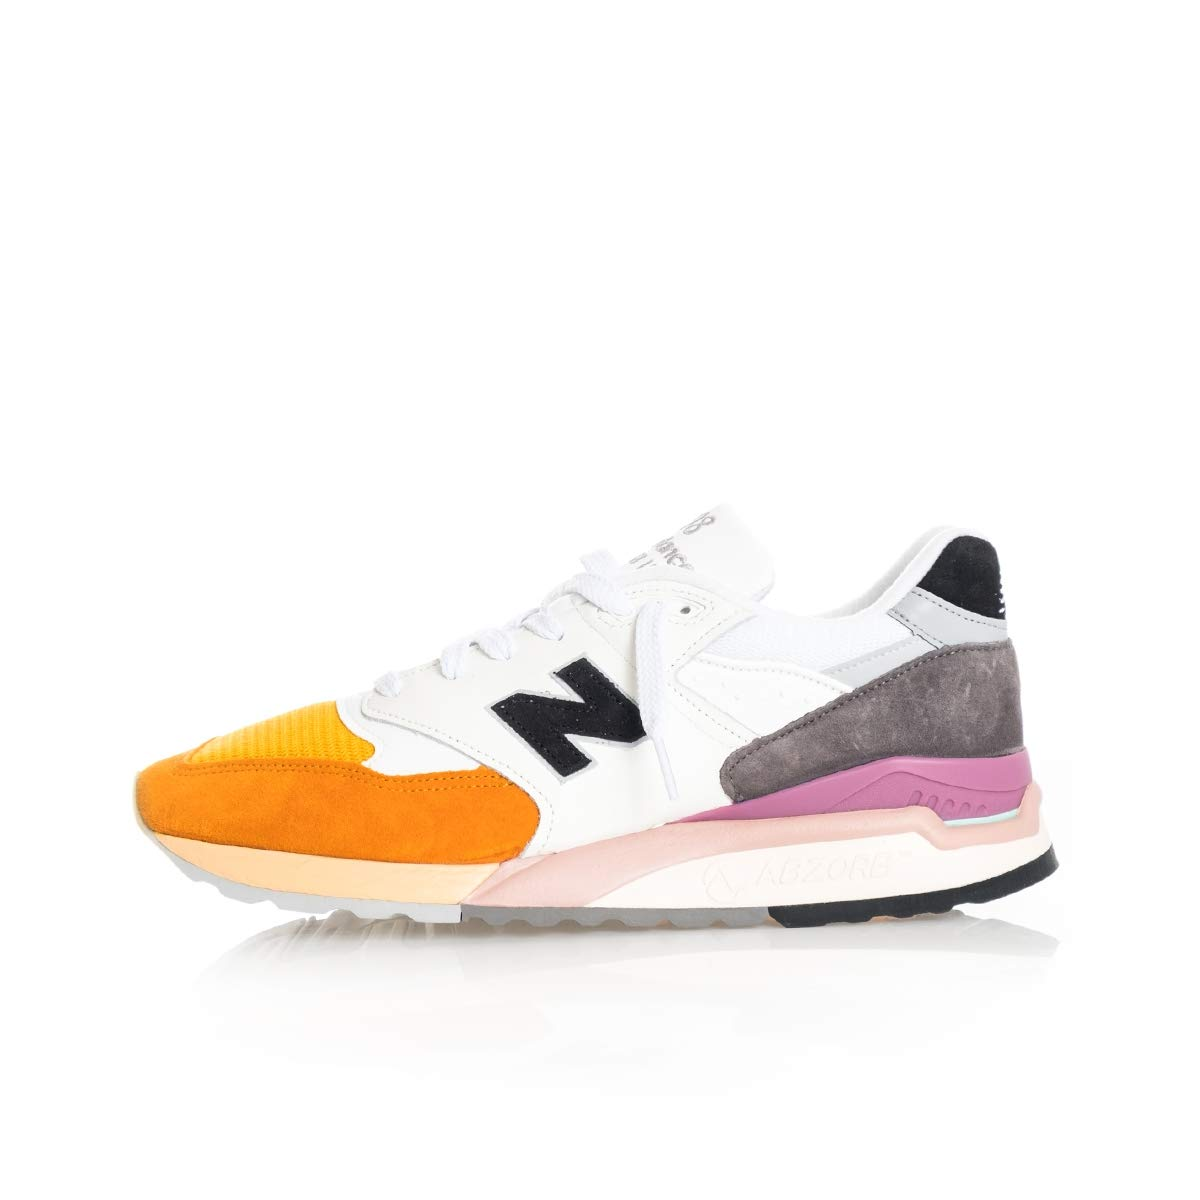 half off 63627 42f1d Amazon.com | New Balance 998 (Made in USA) | Shoes